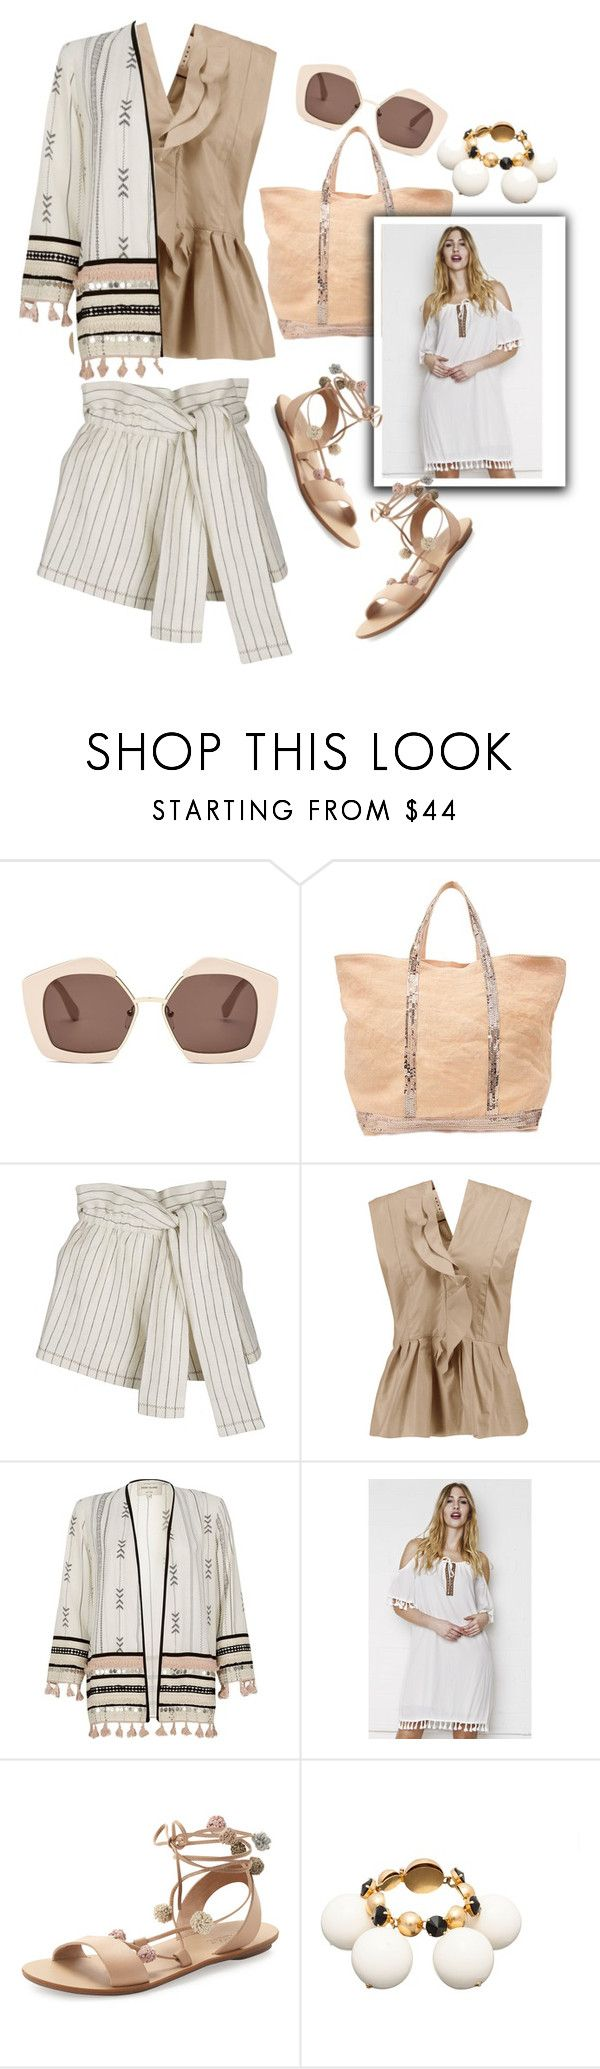 """""""Pom Poms"""" by grinevagh ❤ liked on Polyvore featuring Marni, Vanessa Bruno, 3.1 Phillip Lim, River Island, Liquor n Poker and Loeffler Randall"""